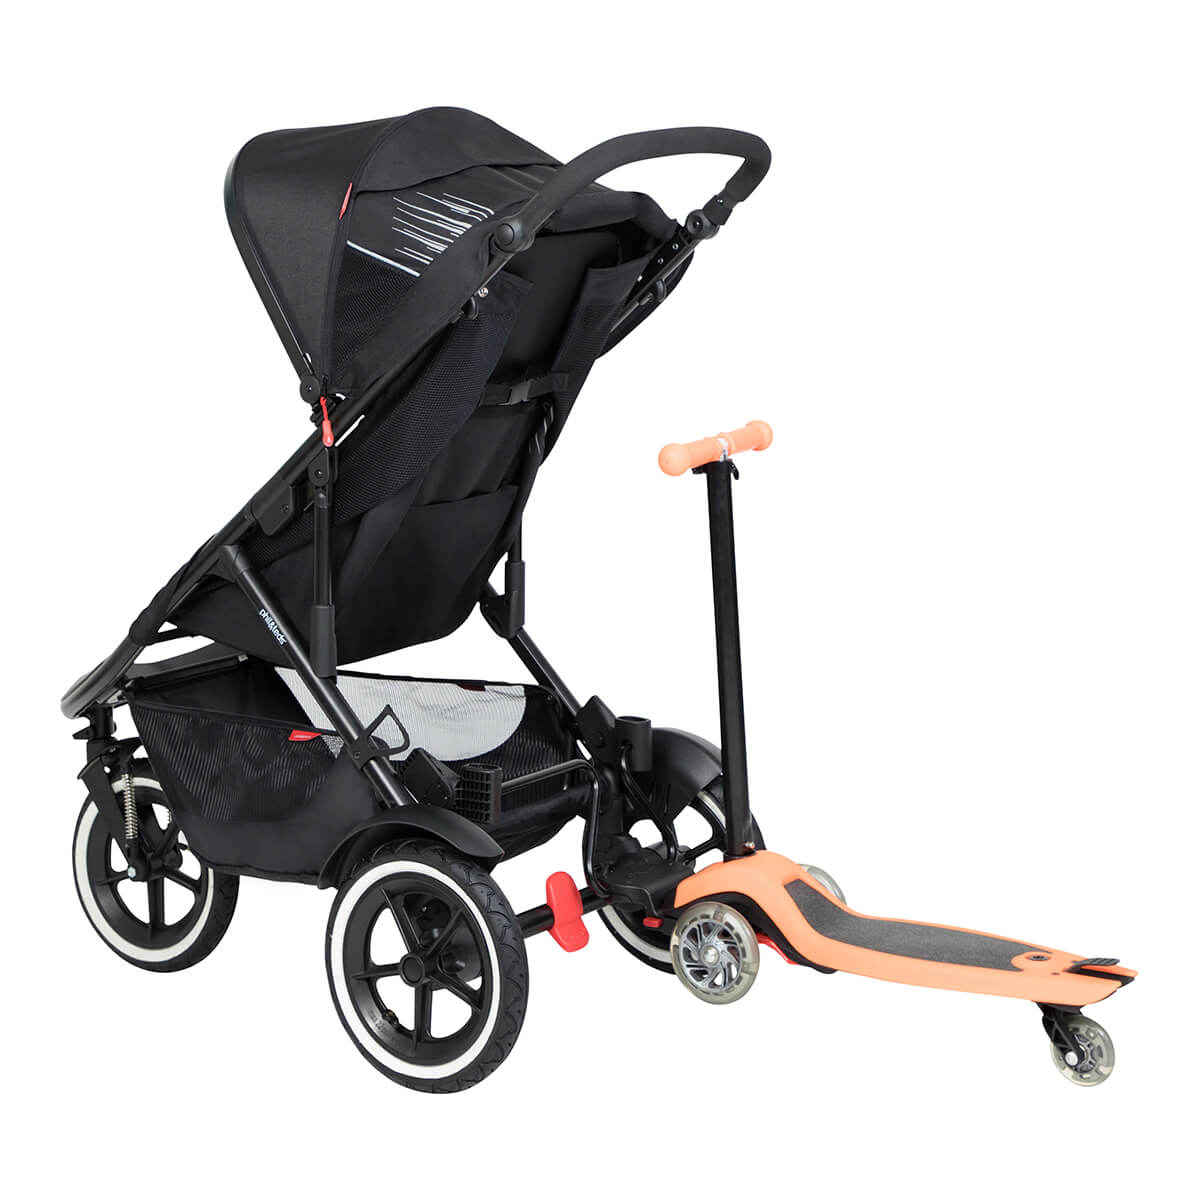 https://cdn.accentuate.io/4509528719448/19272668348504/philteds-sport-poussette-with-freerider-stroller-board-in-rear-v1626484516972.jpg?1200x1200